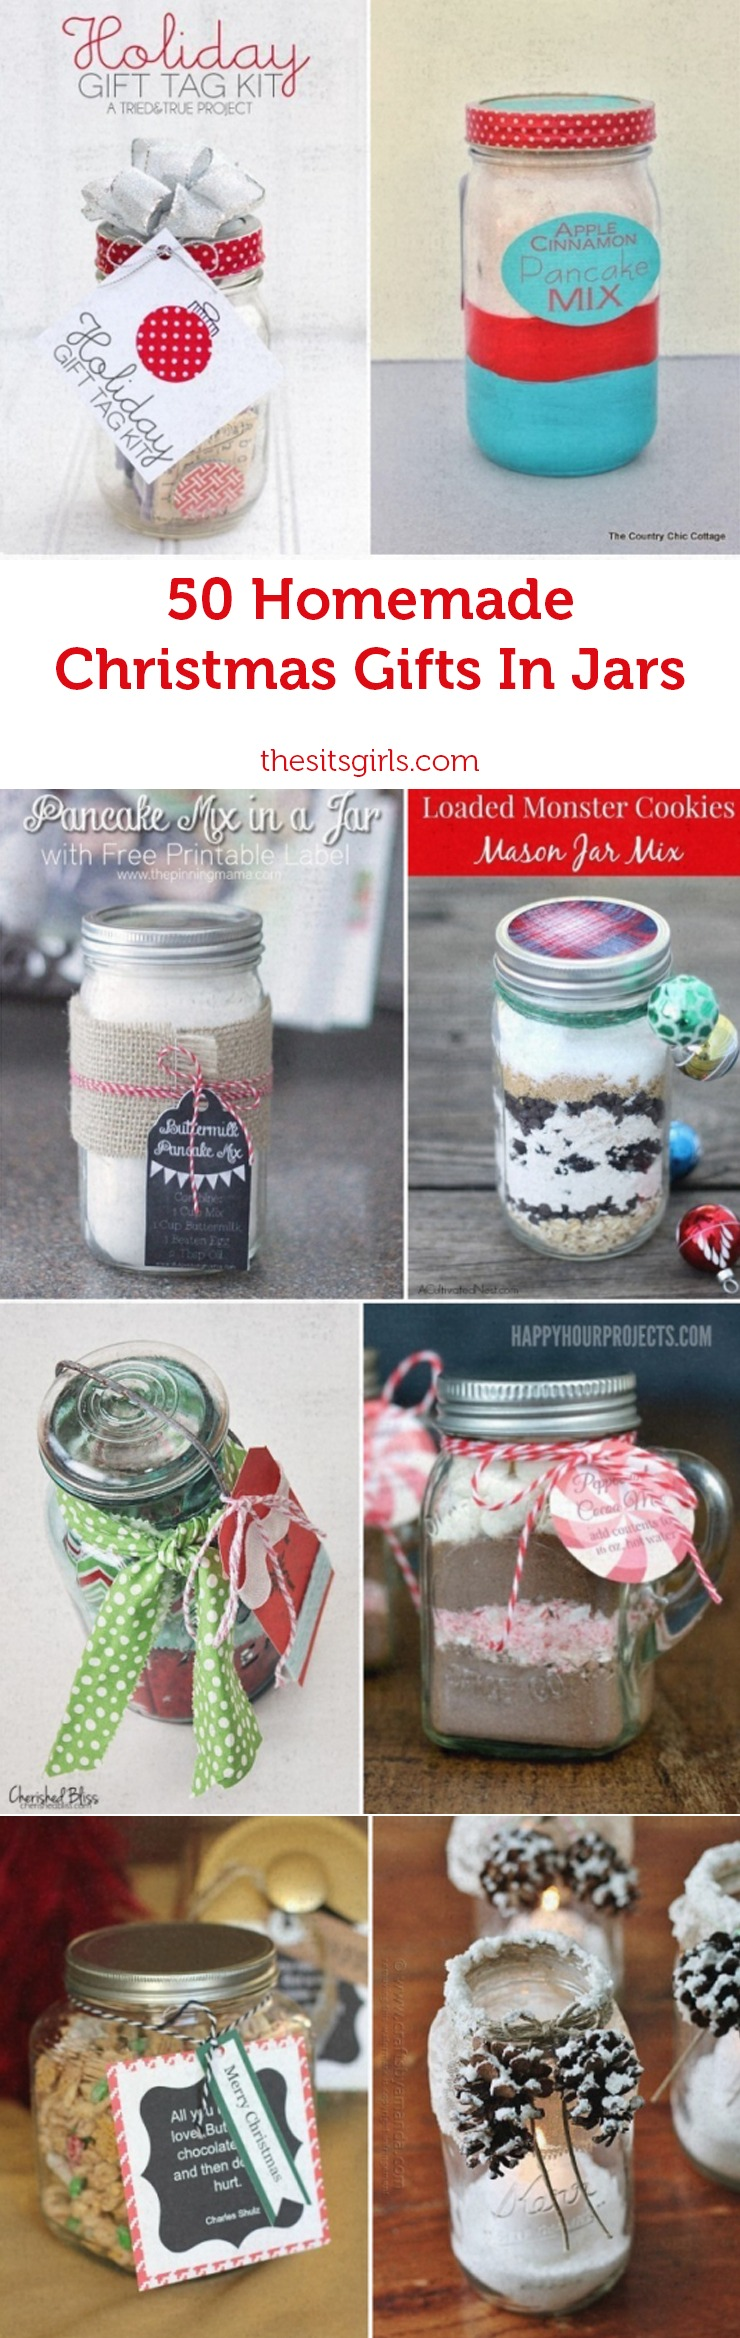 Homemade Christmas Gift Ideas | Cute Christmas gifts in jars for your friends and family.